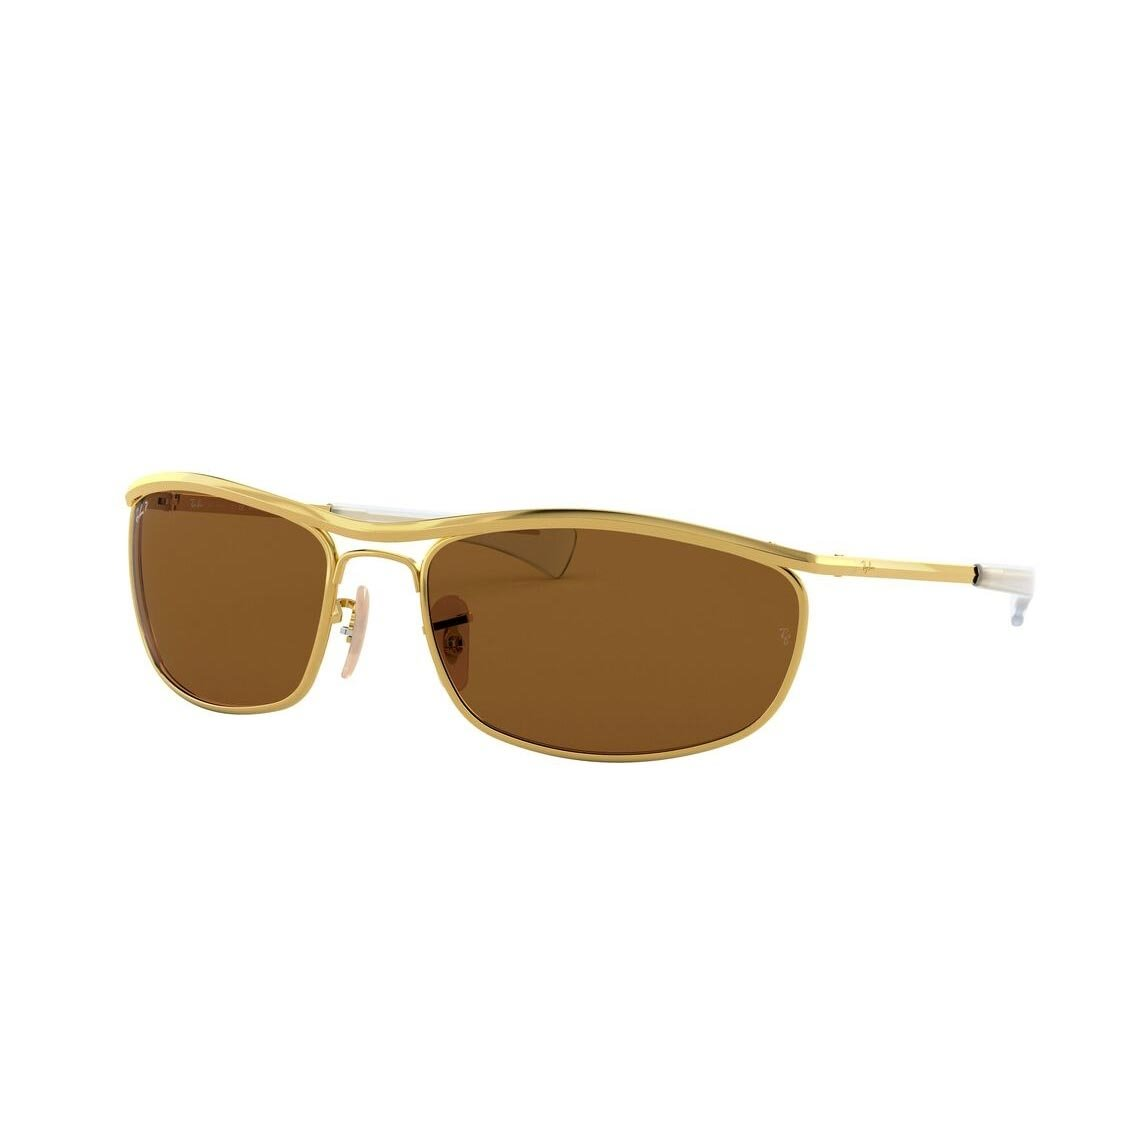 Ray-Ban Olympian I Deluxe RB3119M 001/57 6218